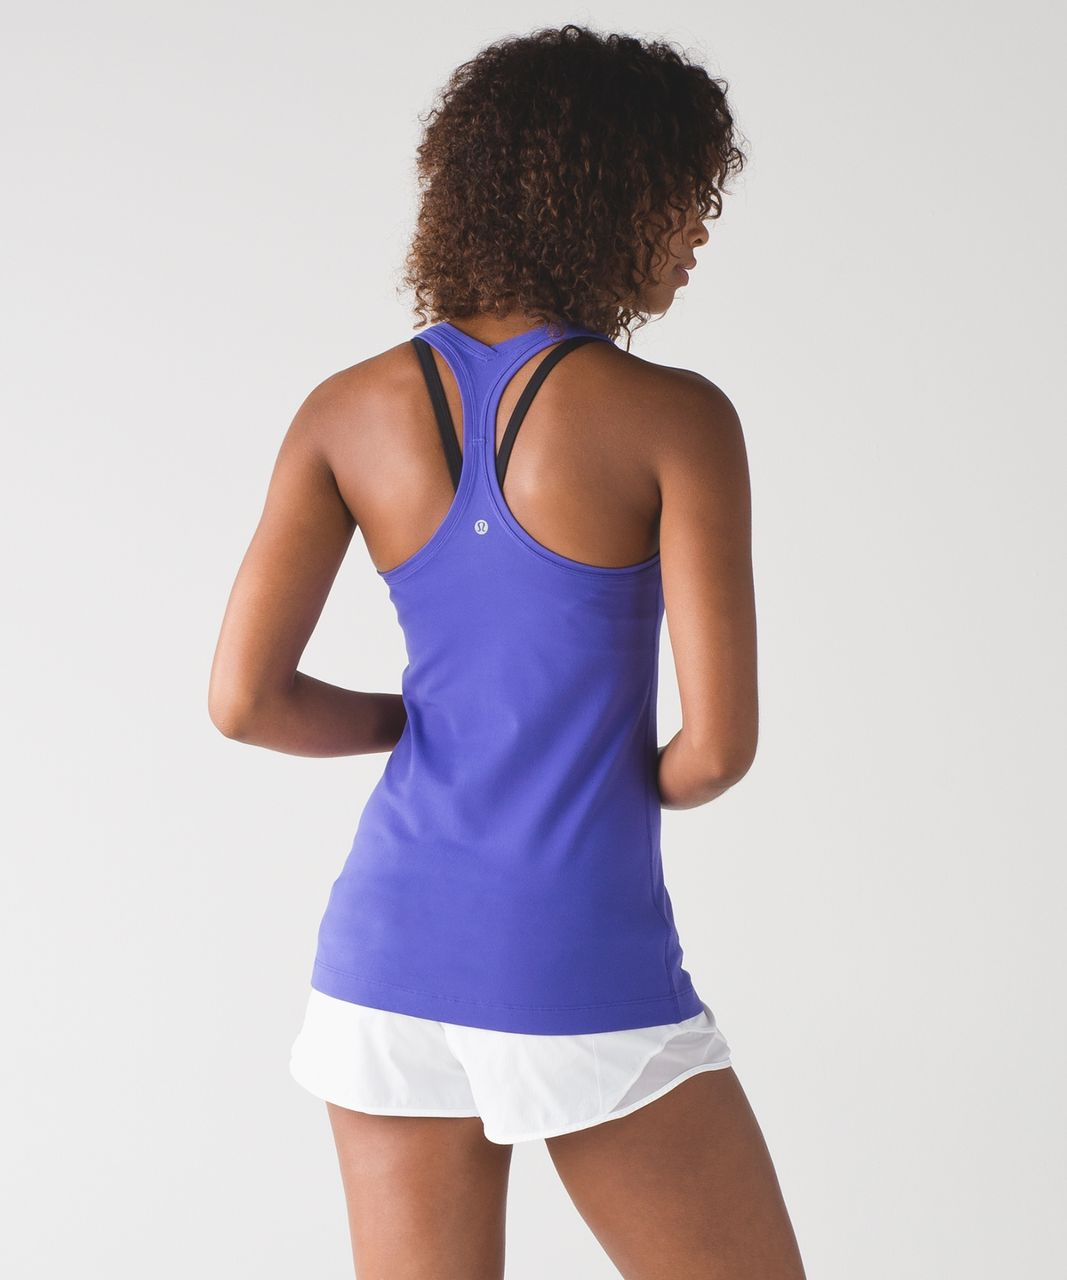 Lululemon Cool Racerback II - Super Purple